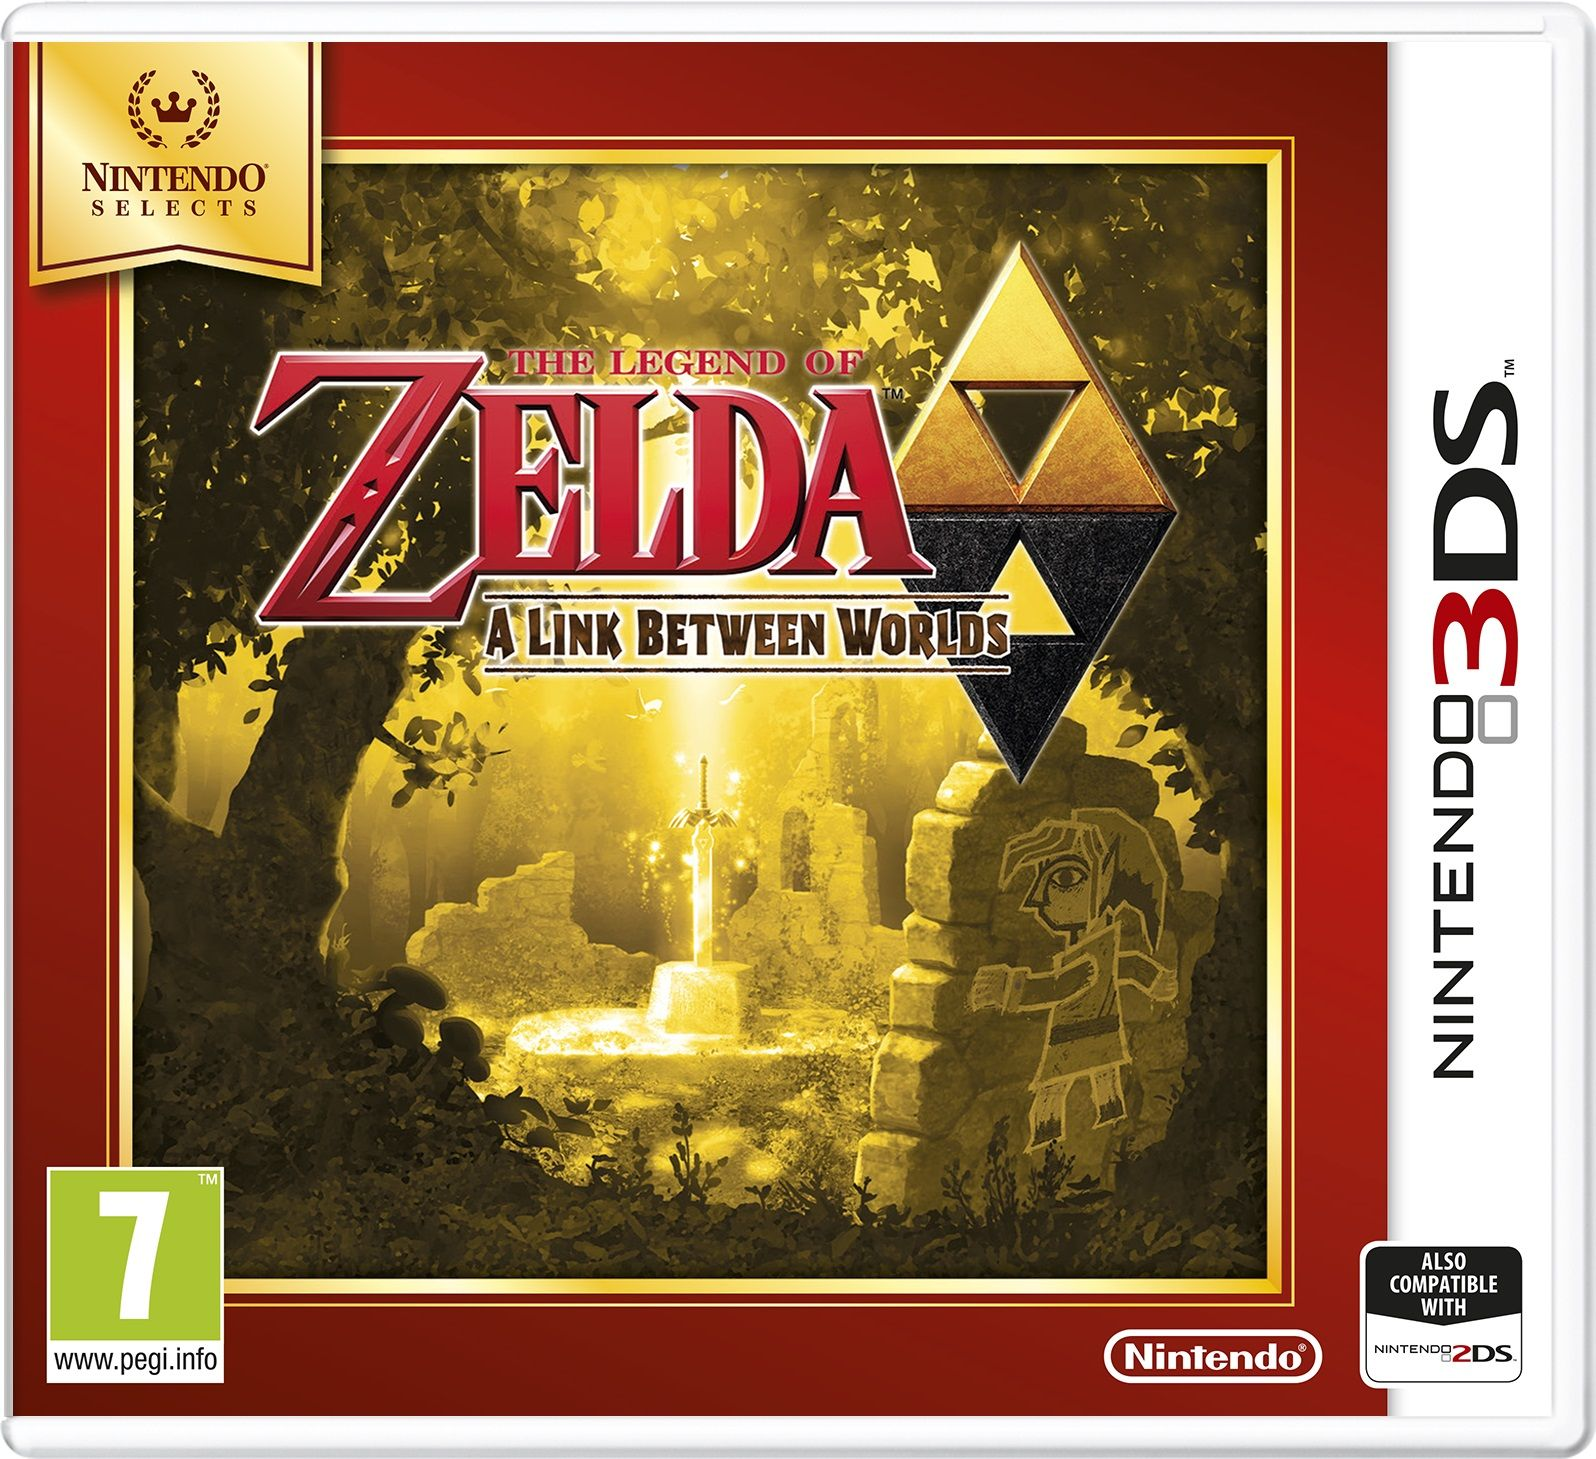 THE LEGEND OF ZELDA A Link Between Worlds Select 3ds